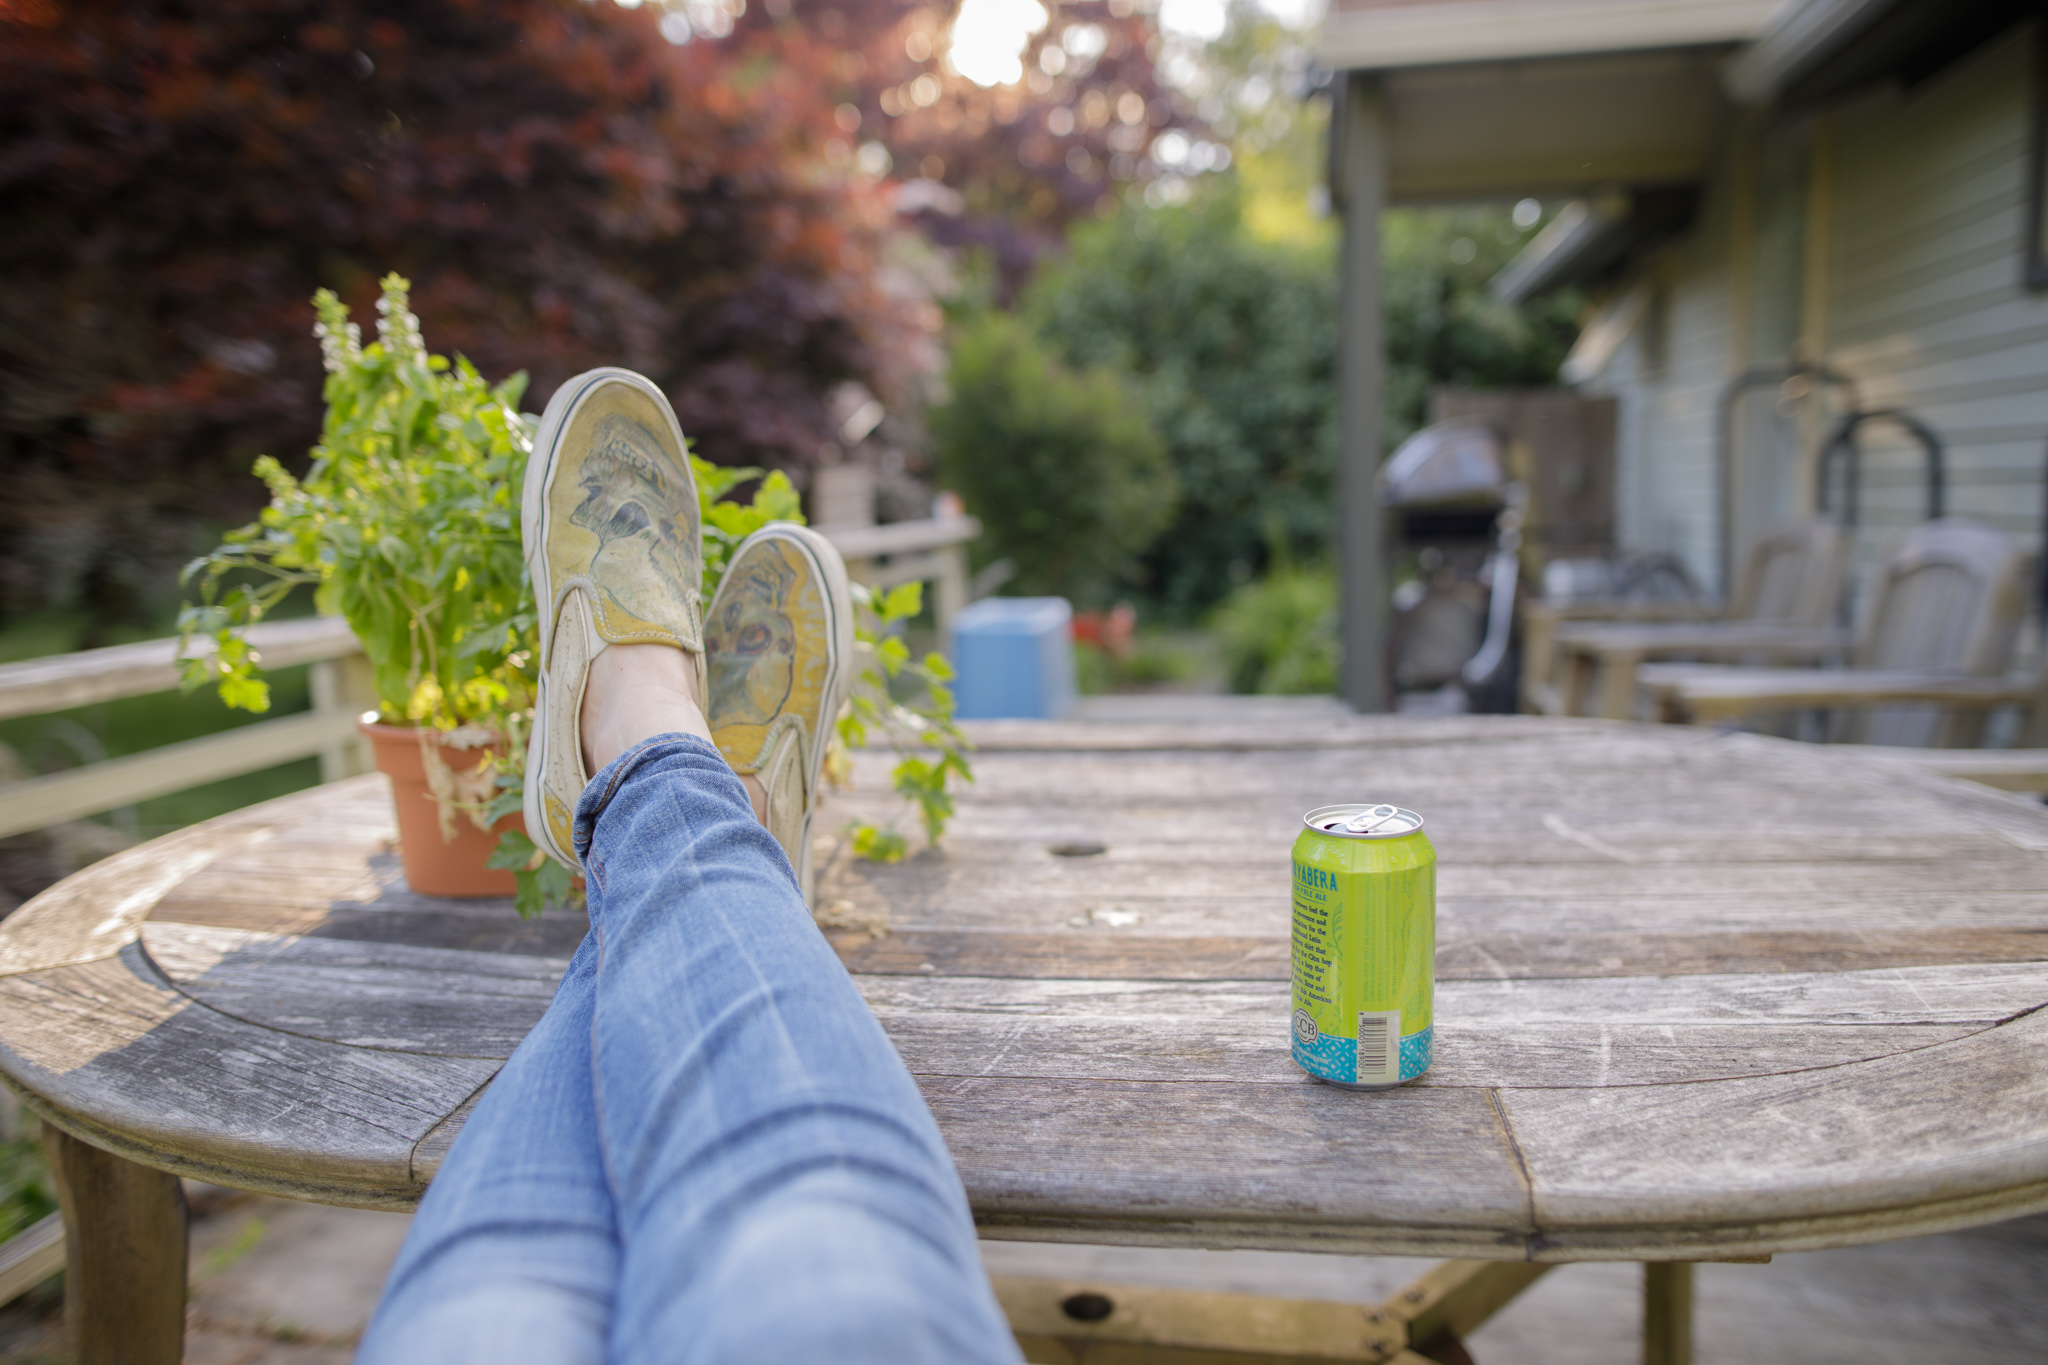 woman sitting at patio table with plant and beer